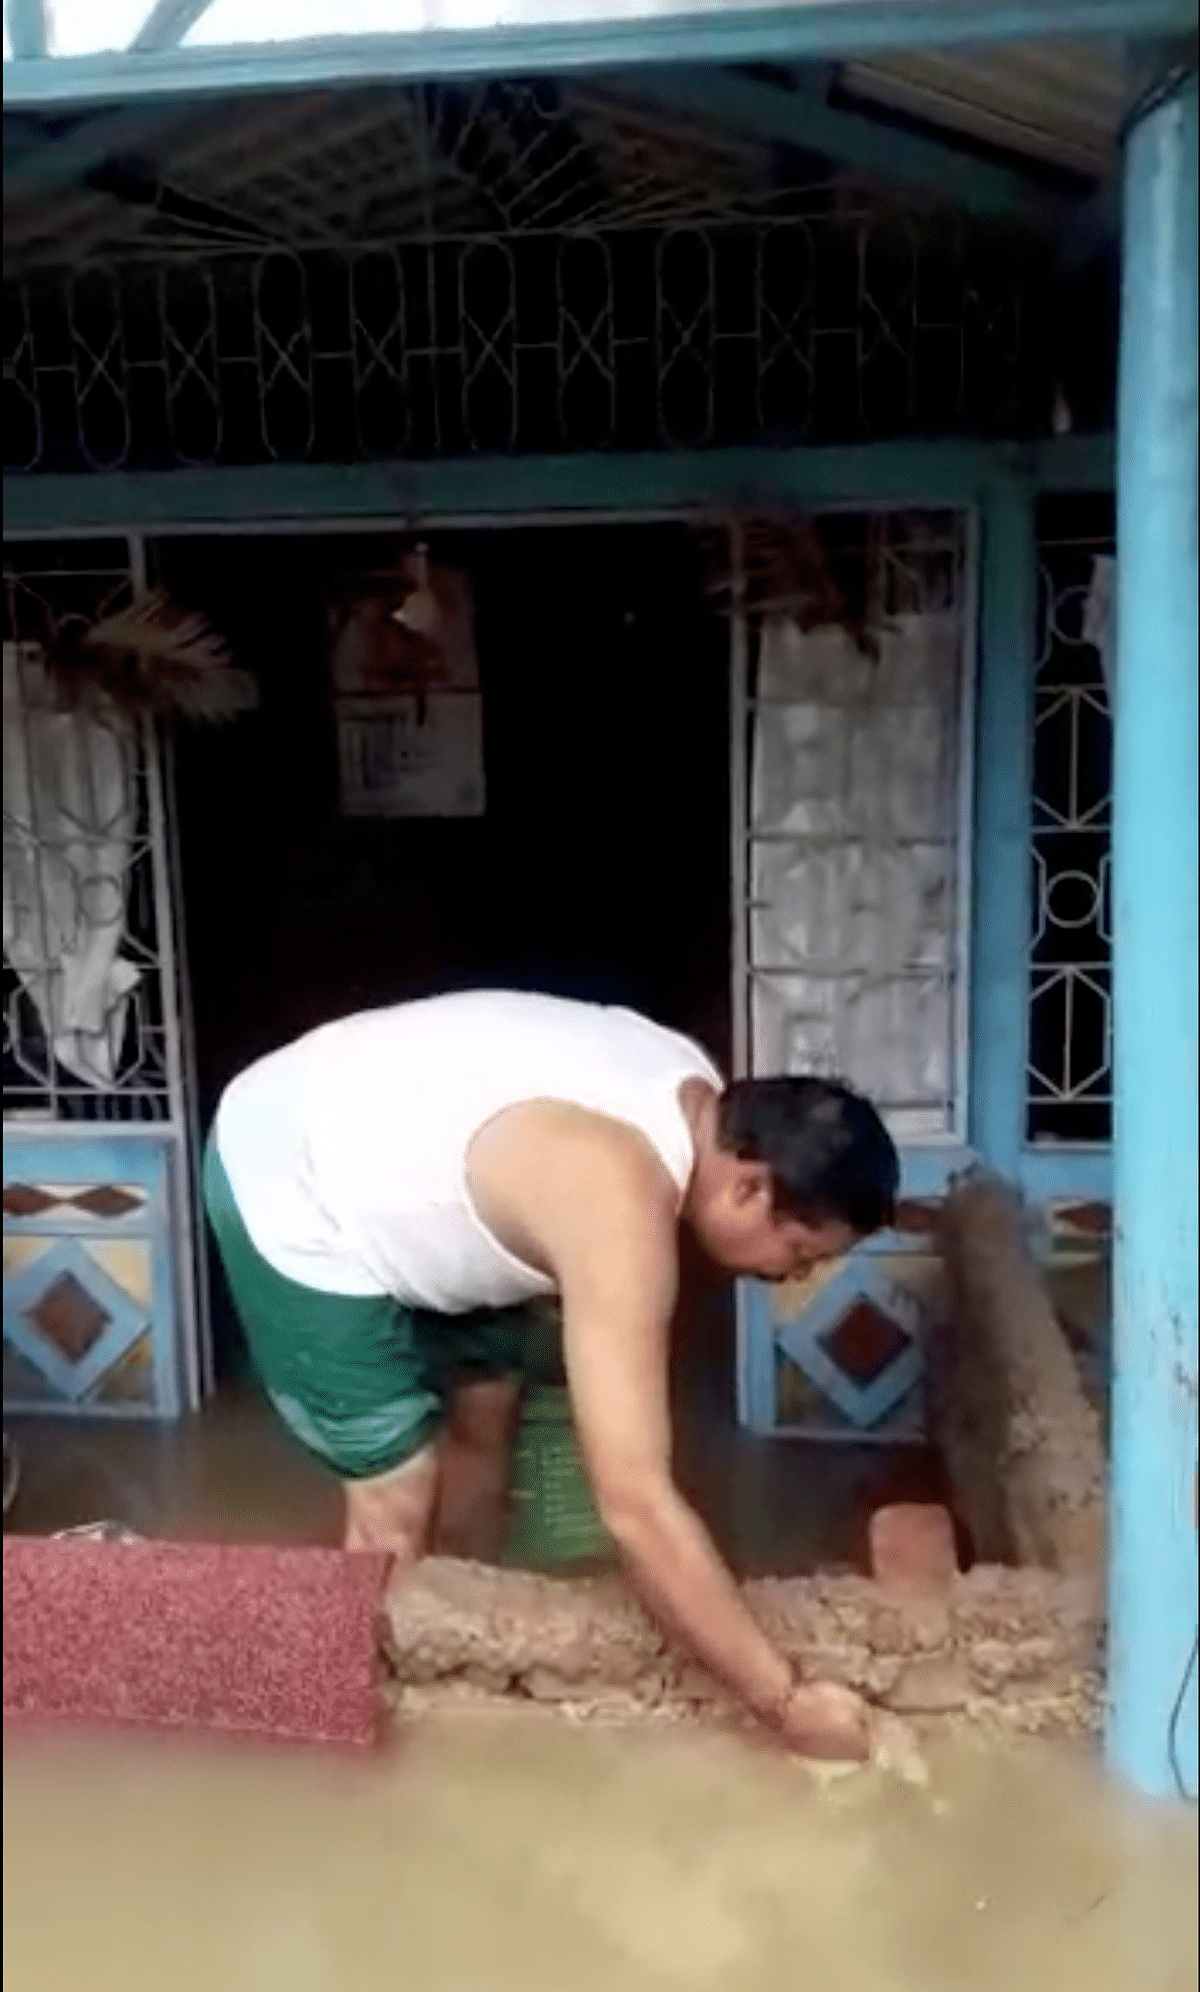 Kokrajhar West MLA Rabiram Narzary trying to drain out water from his house-cum-office in Kokrajhar, Assam